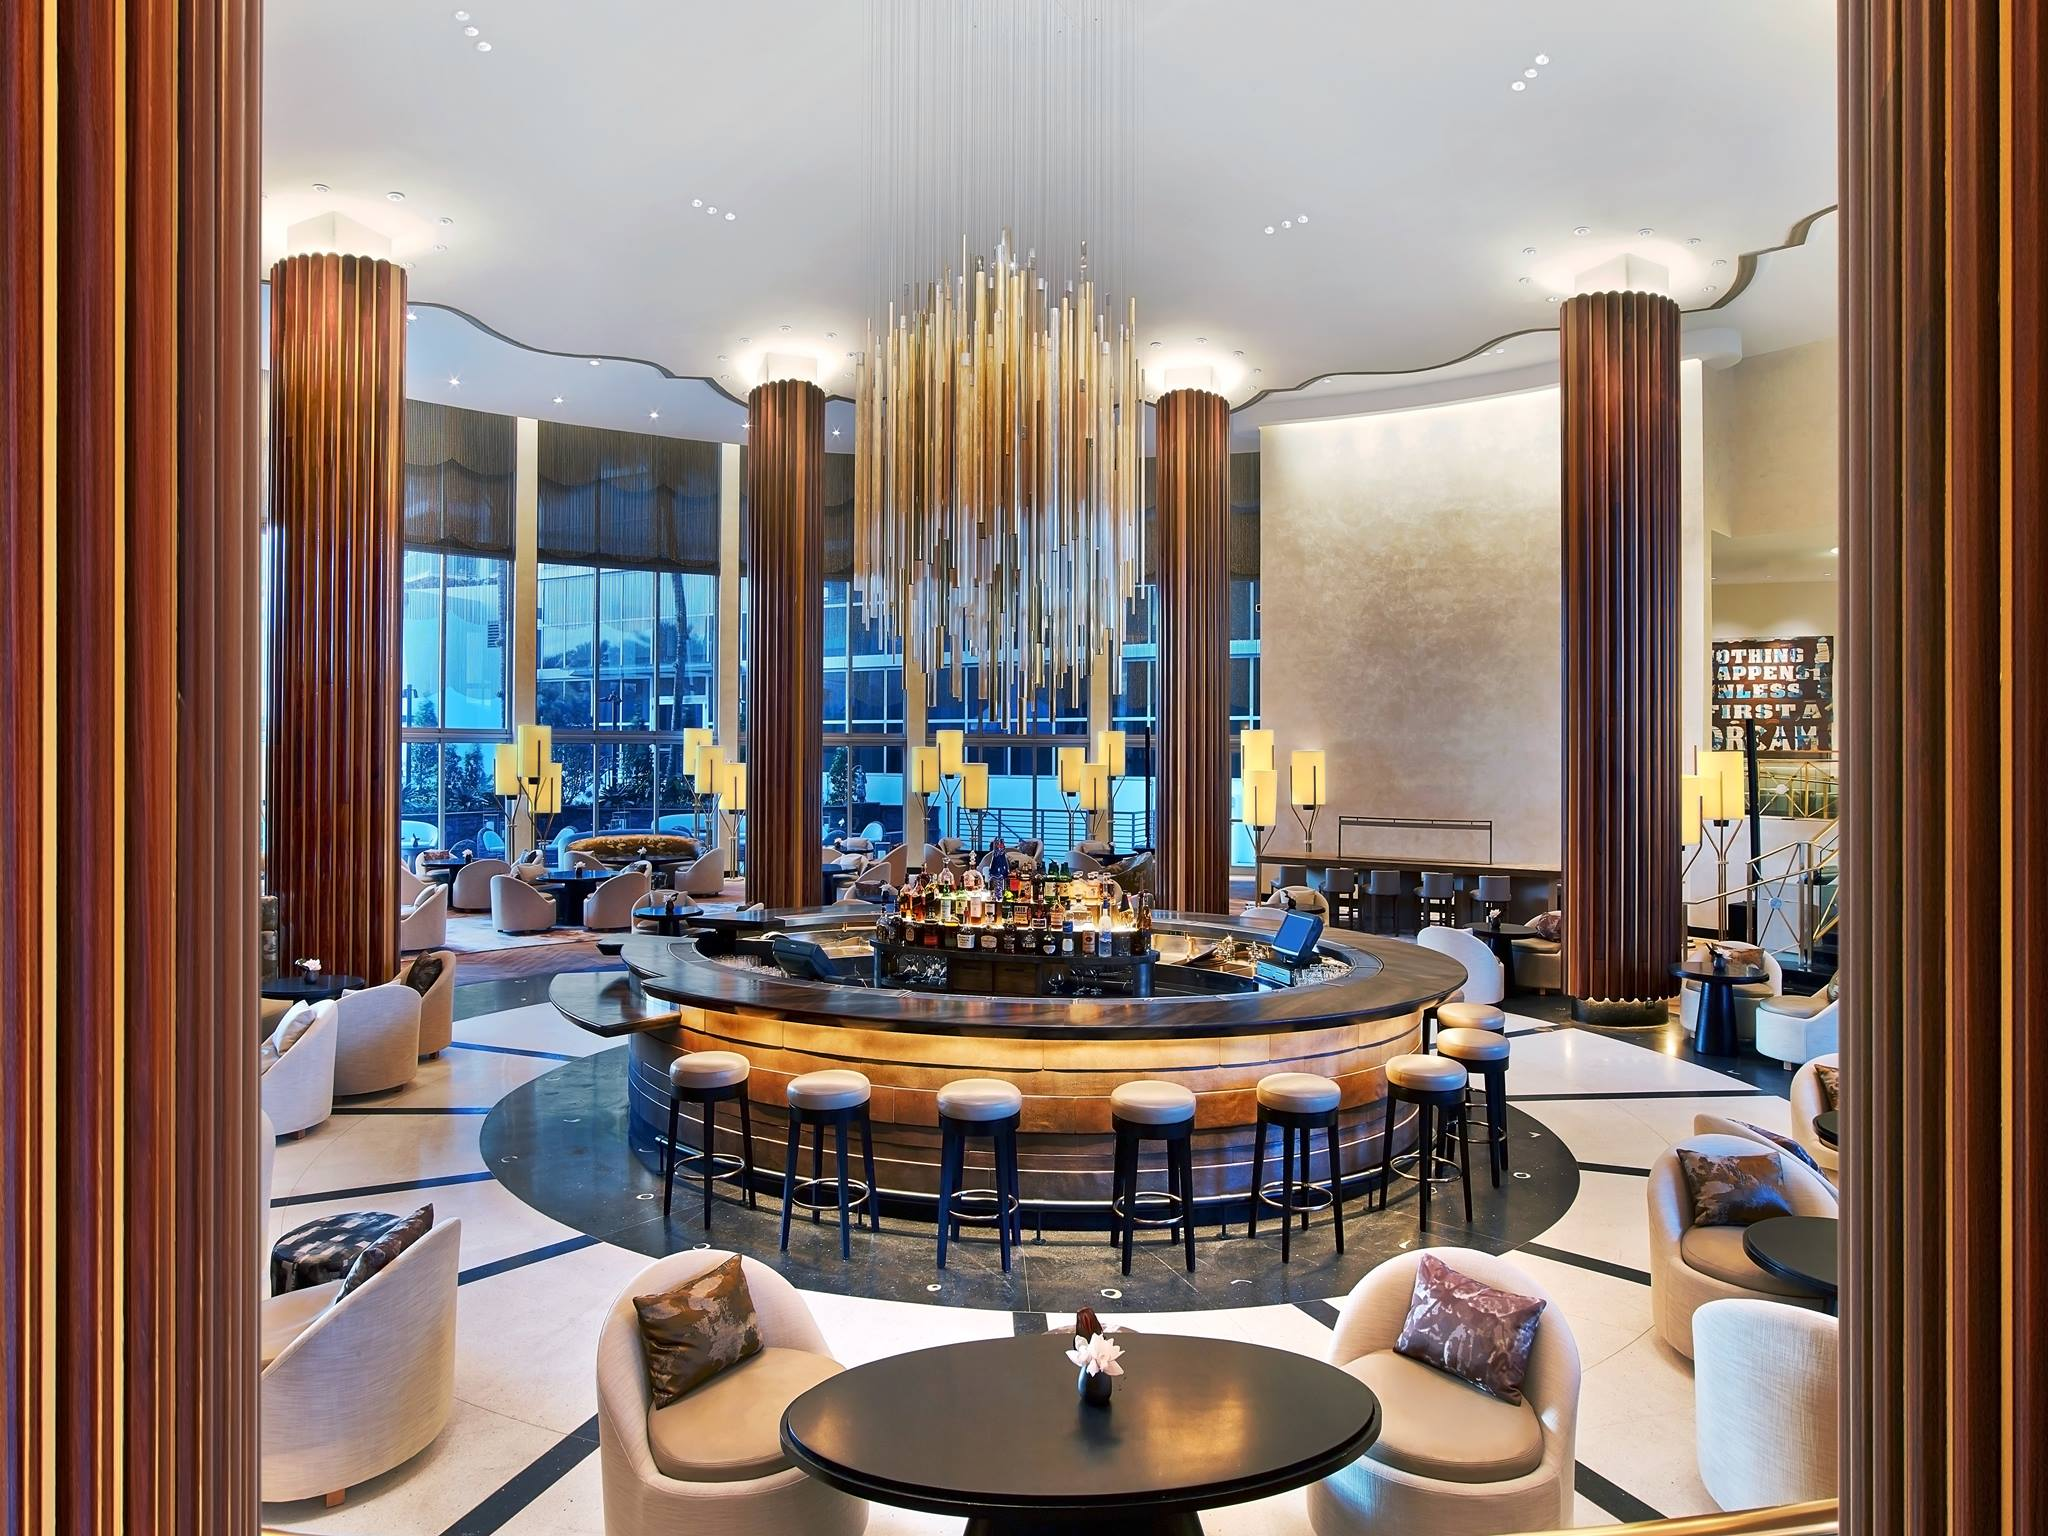 Nobu Hotel A Boutique Hotel Inside The Eden Roc Is